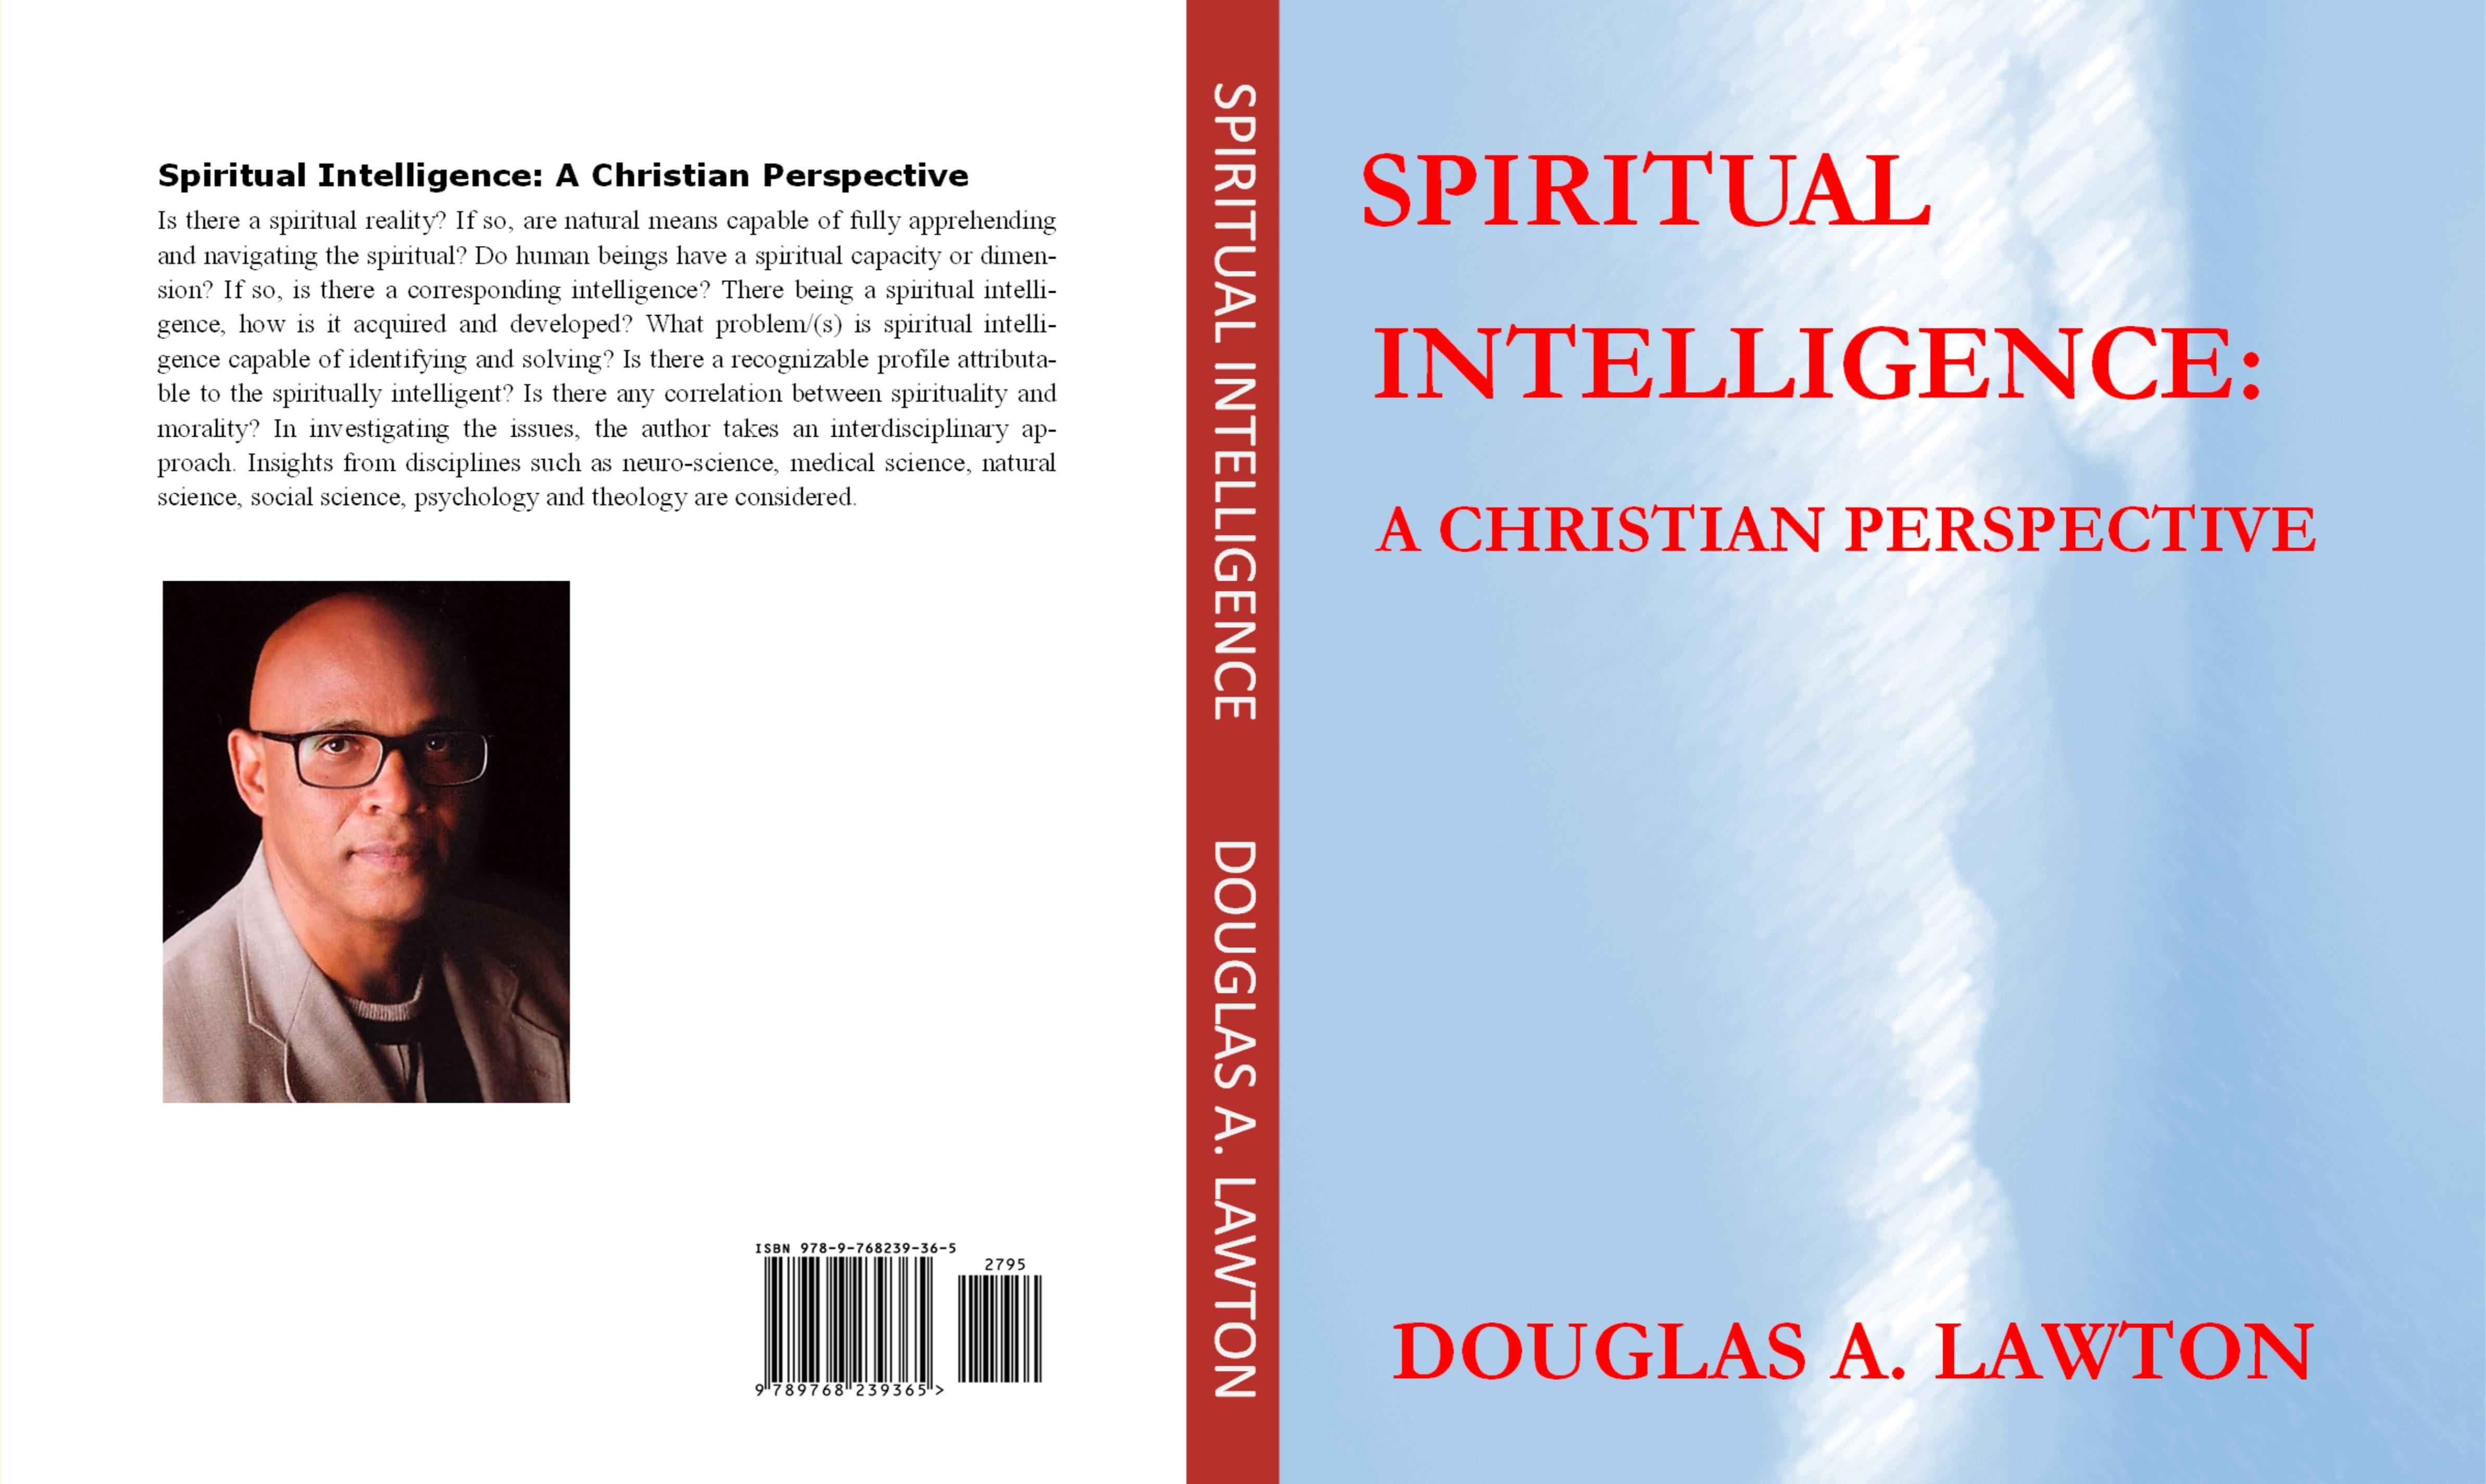 Spiritual Intelligence: A Christian Perspective cover image